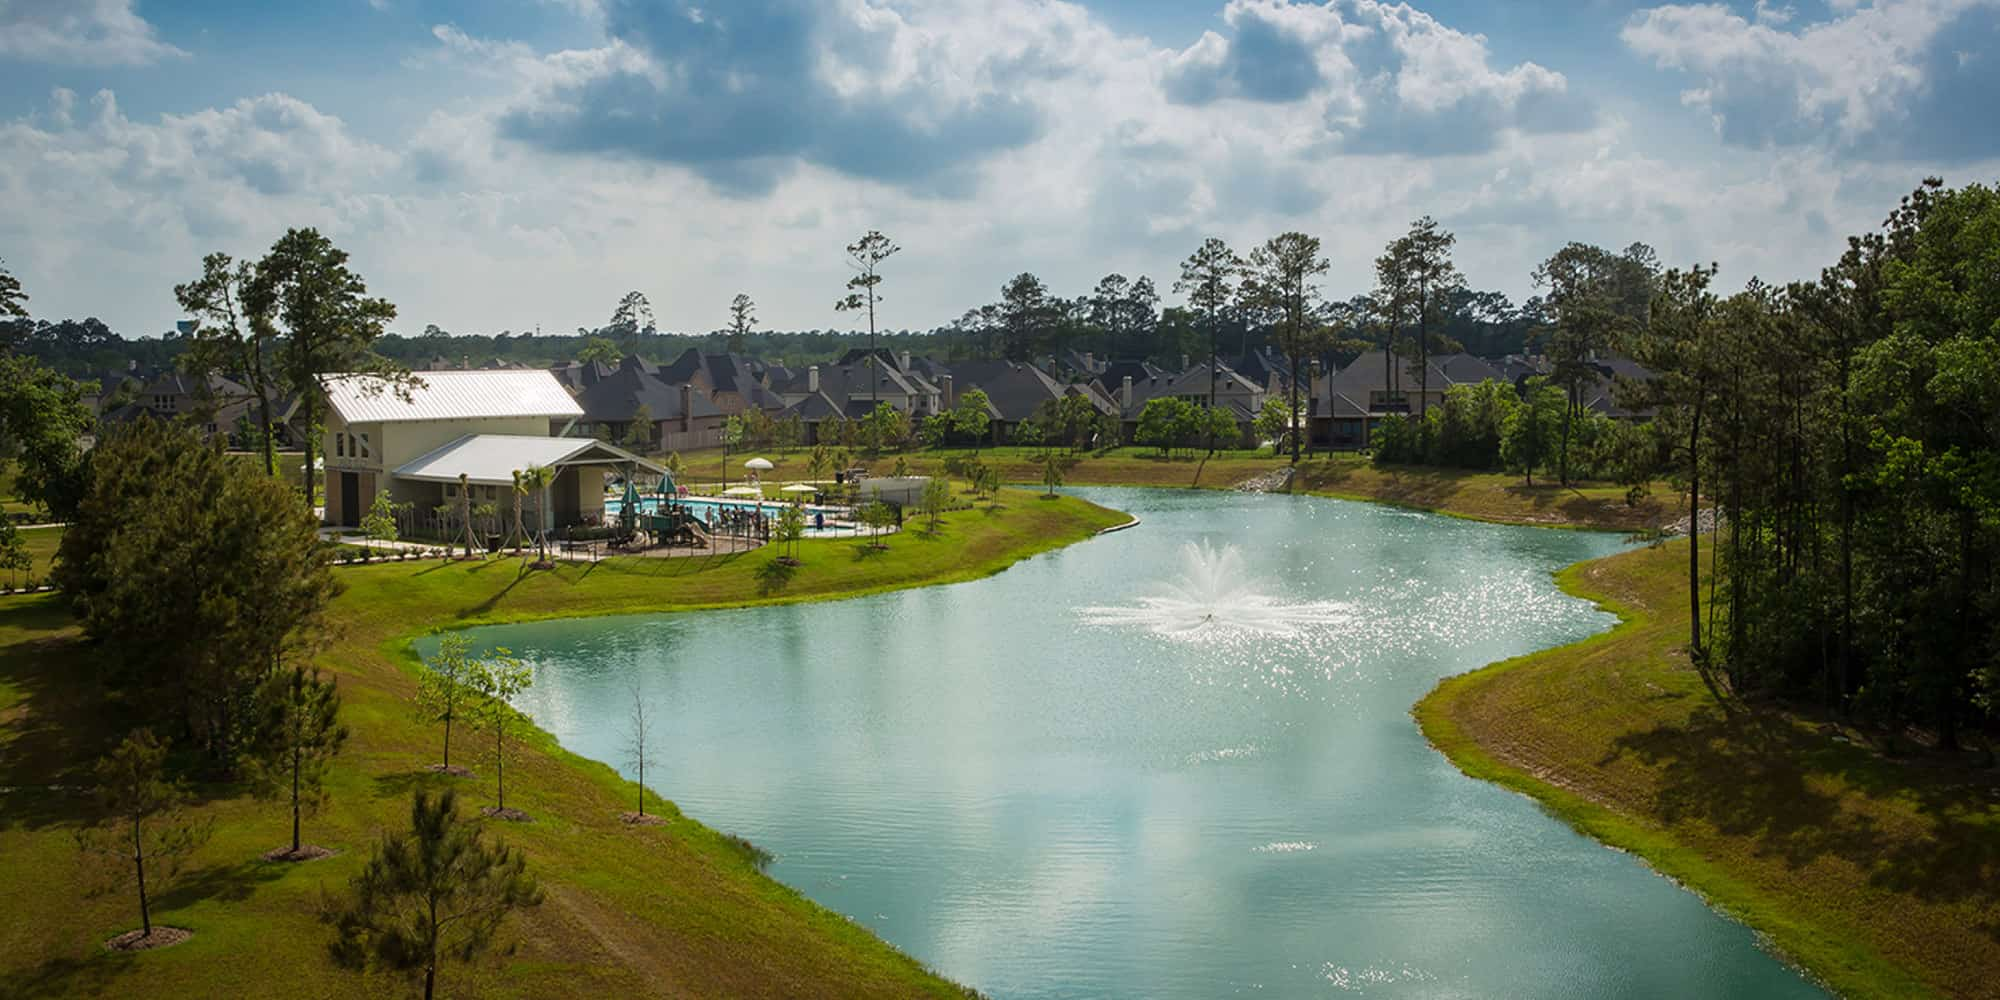 Commercial property development at Harper's Preserve in Conroe, TX